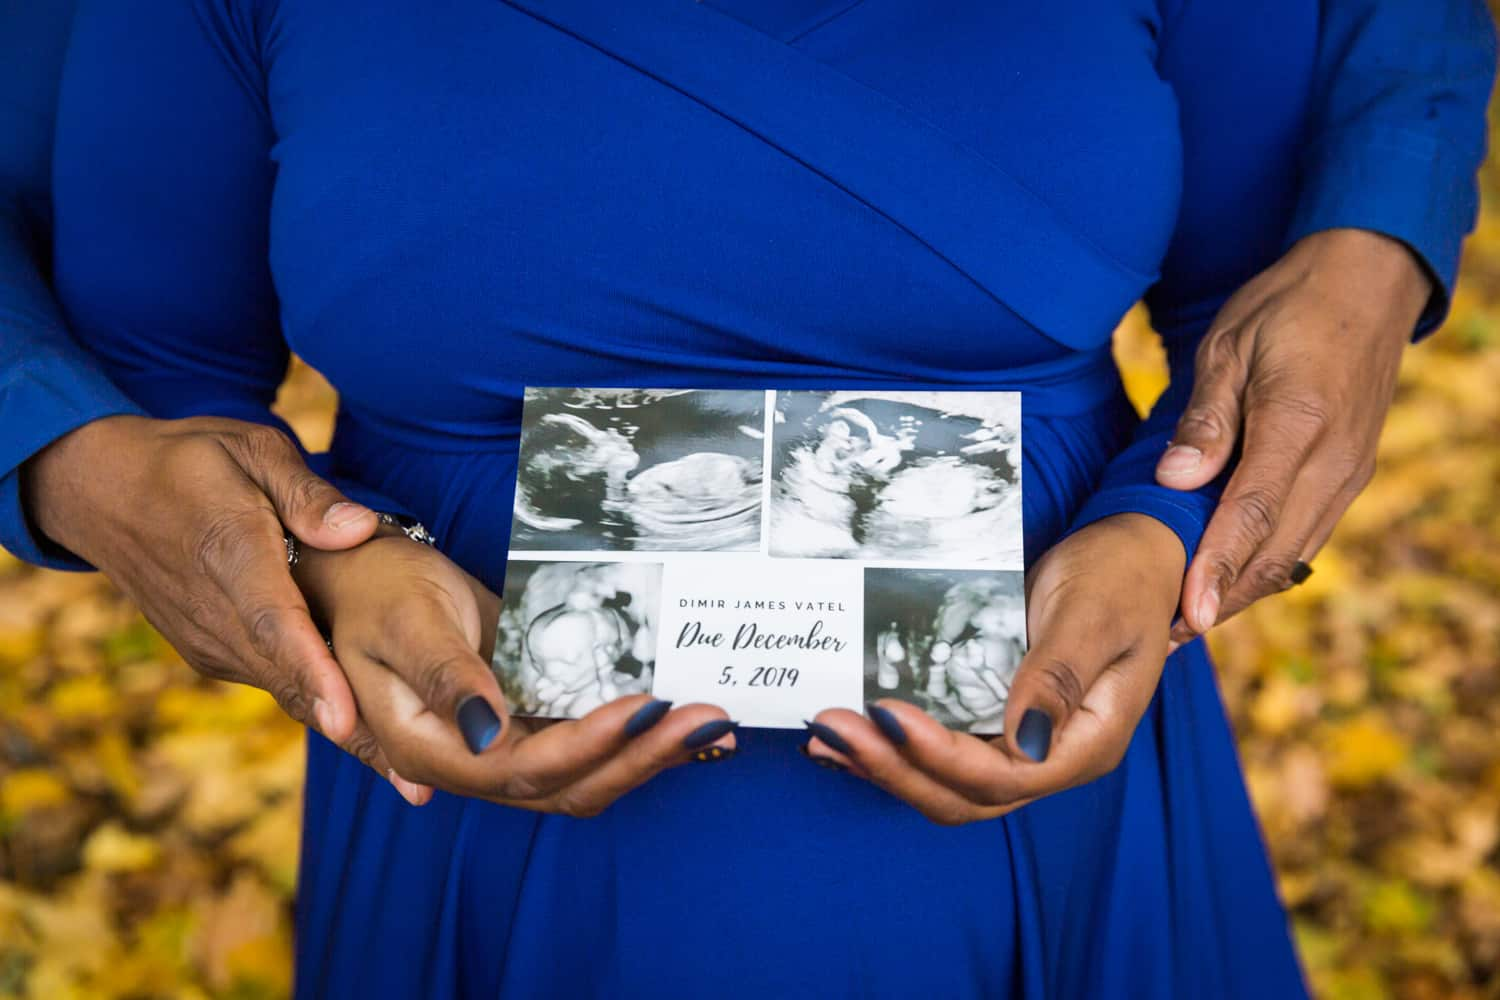 Close up of couple's hands on woman's pregnant stomach and holding birth announcement postcard